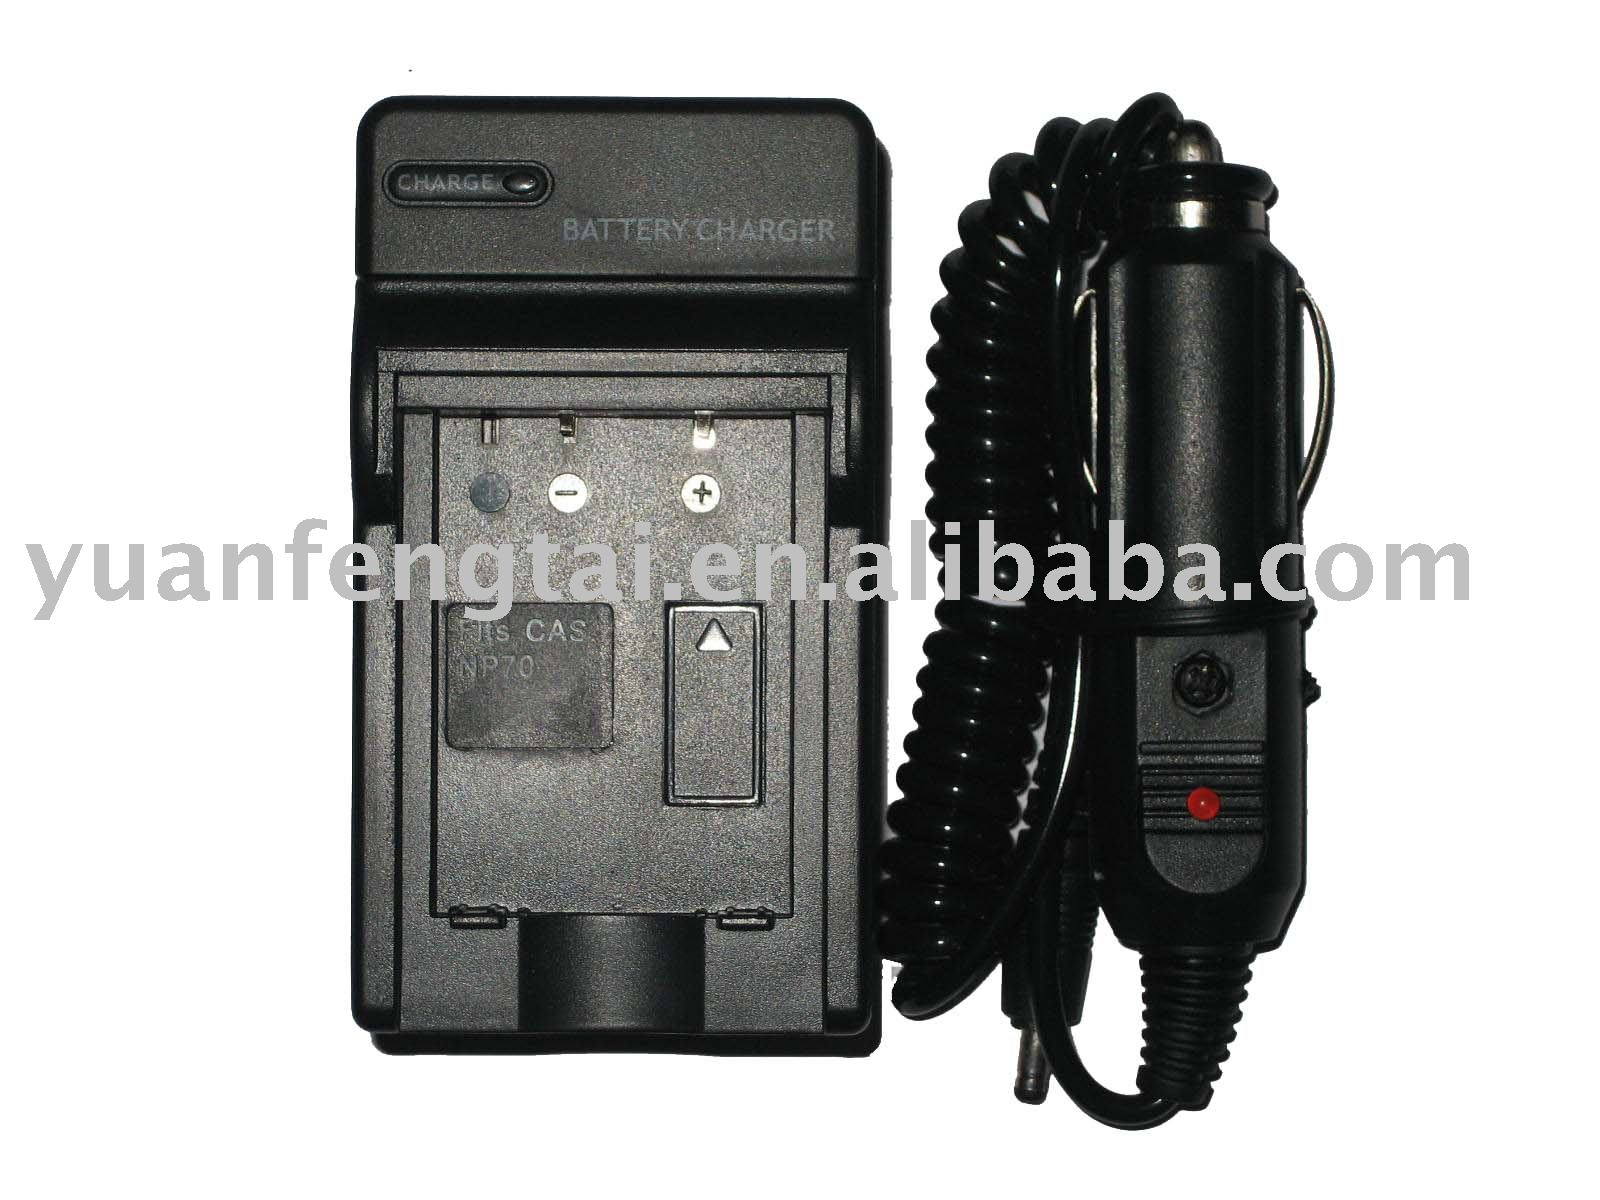 CNP-70 camera charger digital camera battery charger for Casio CNP-70